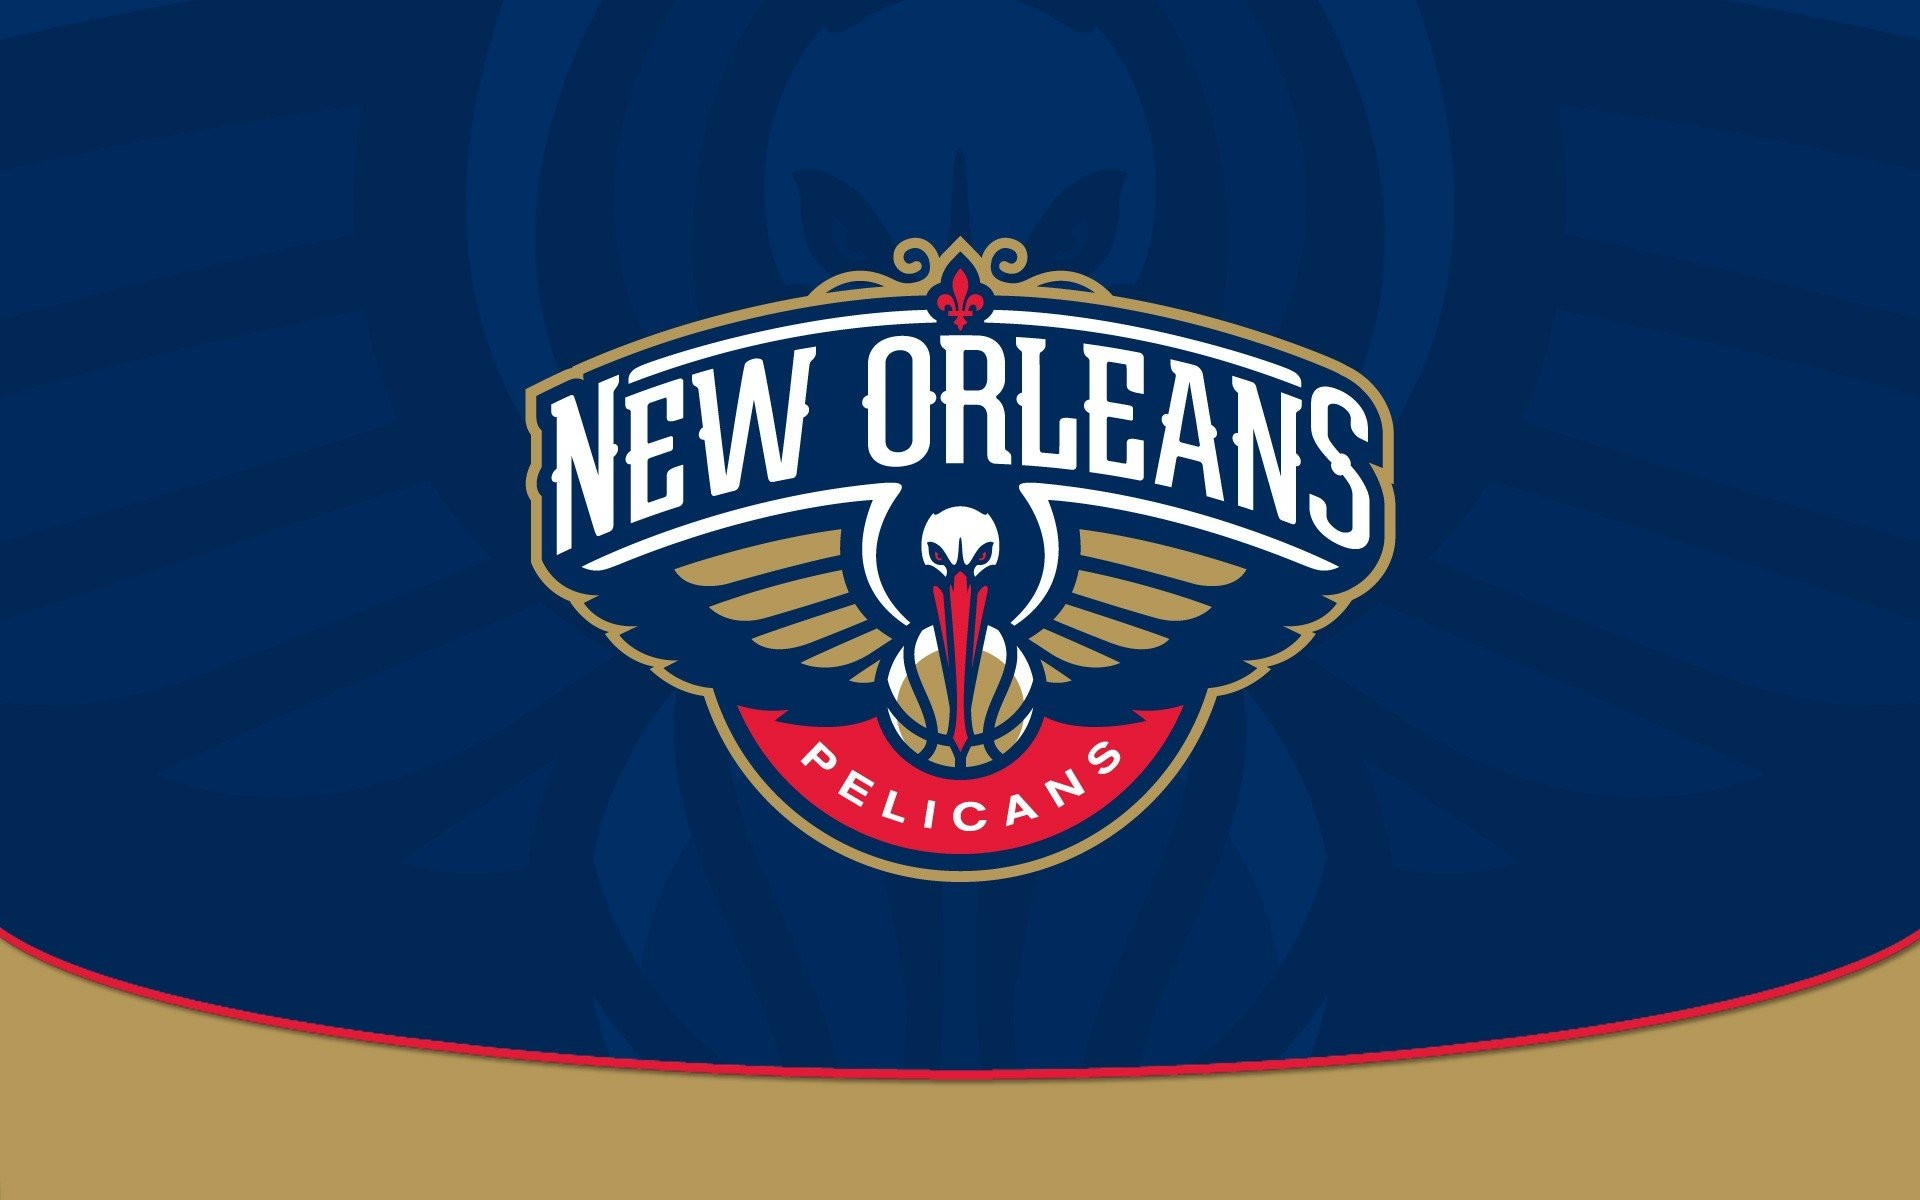 1920x1200 NBA Basketball New Orleans Pelicans Sports